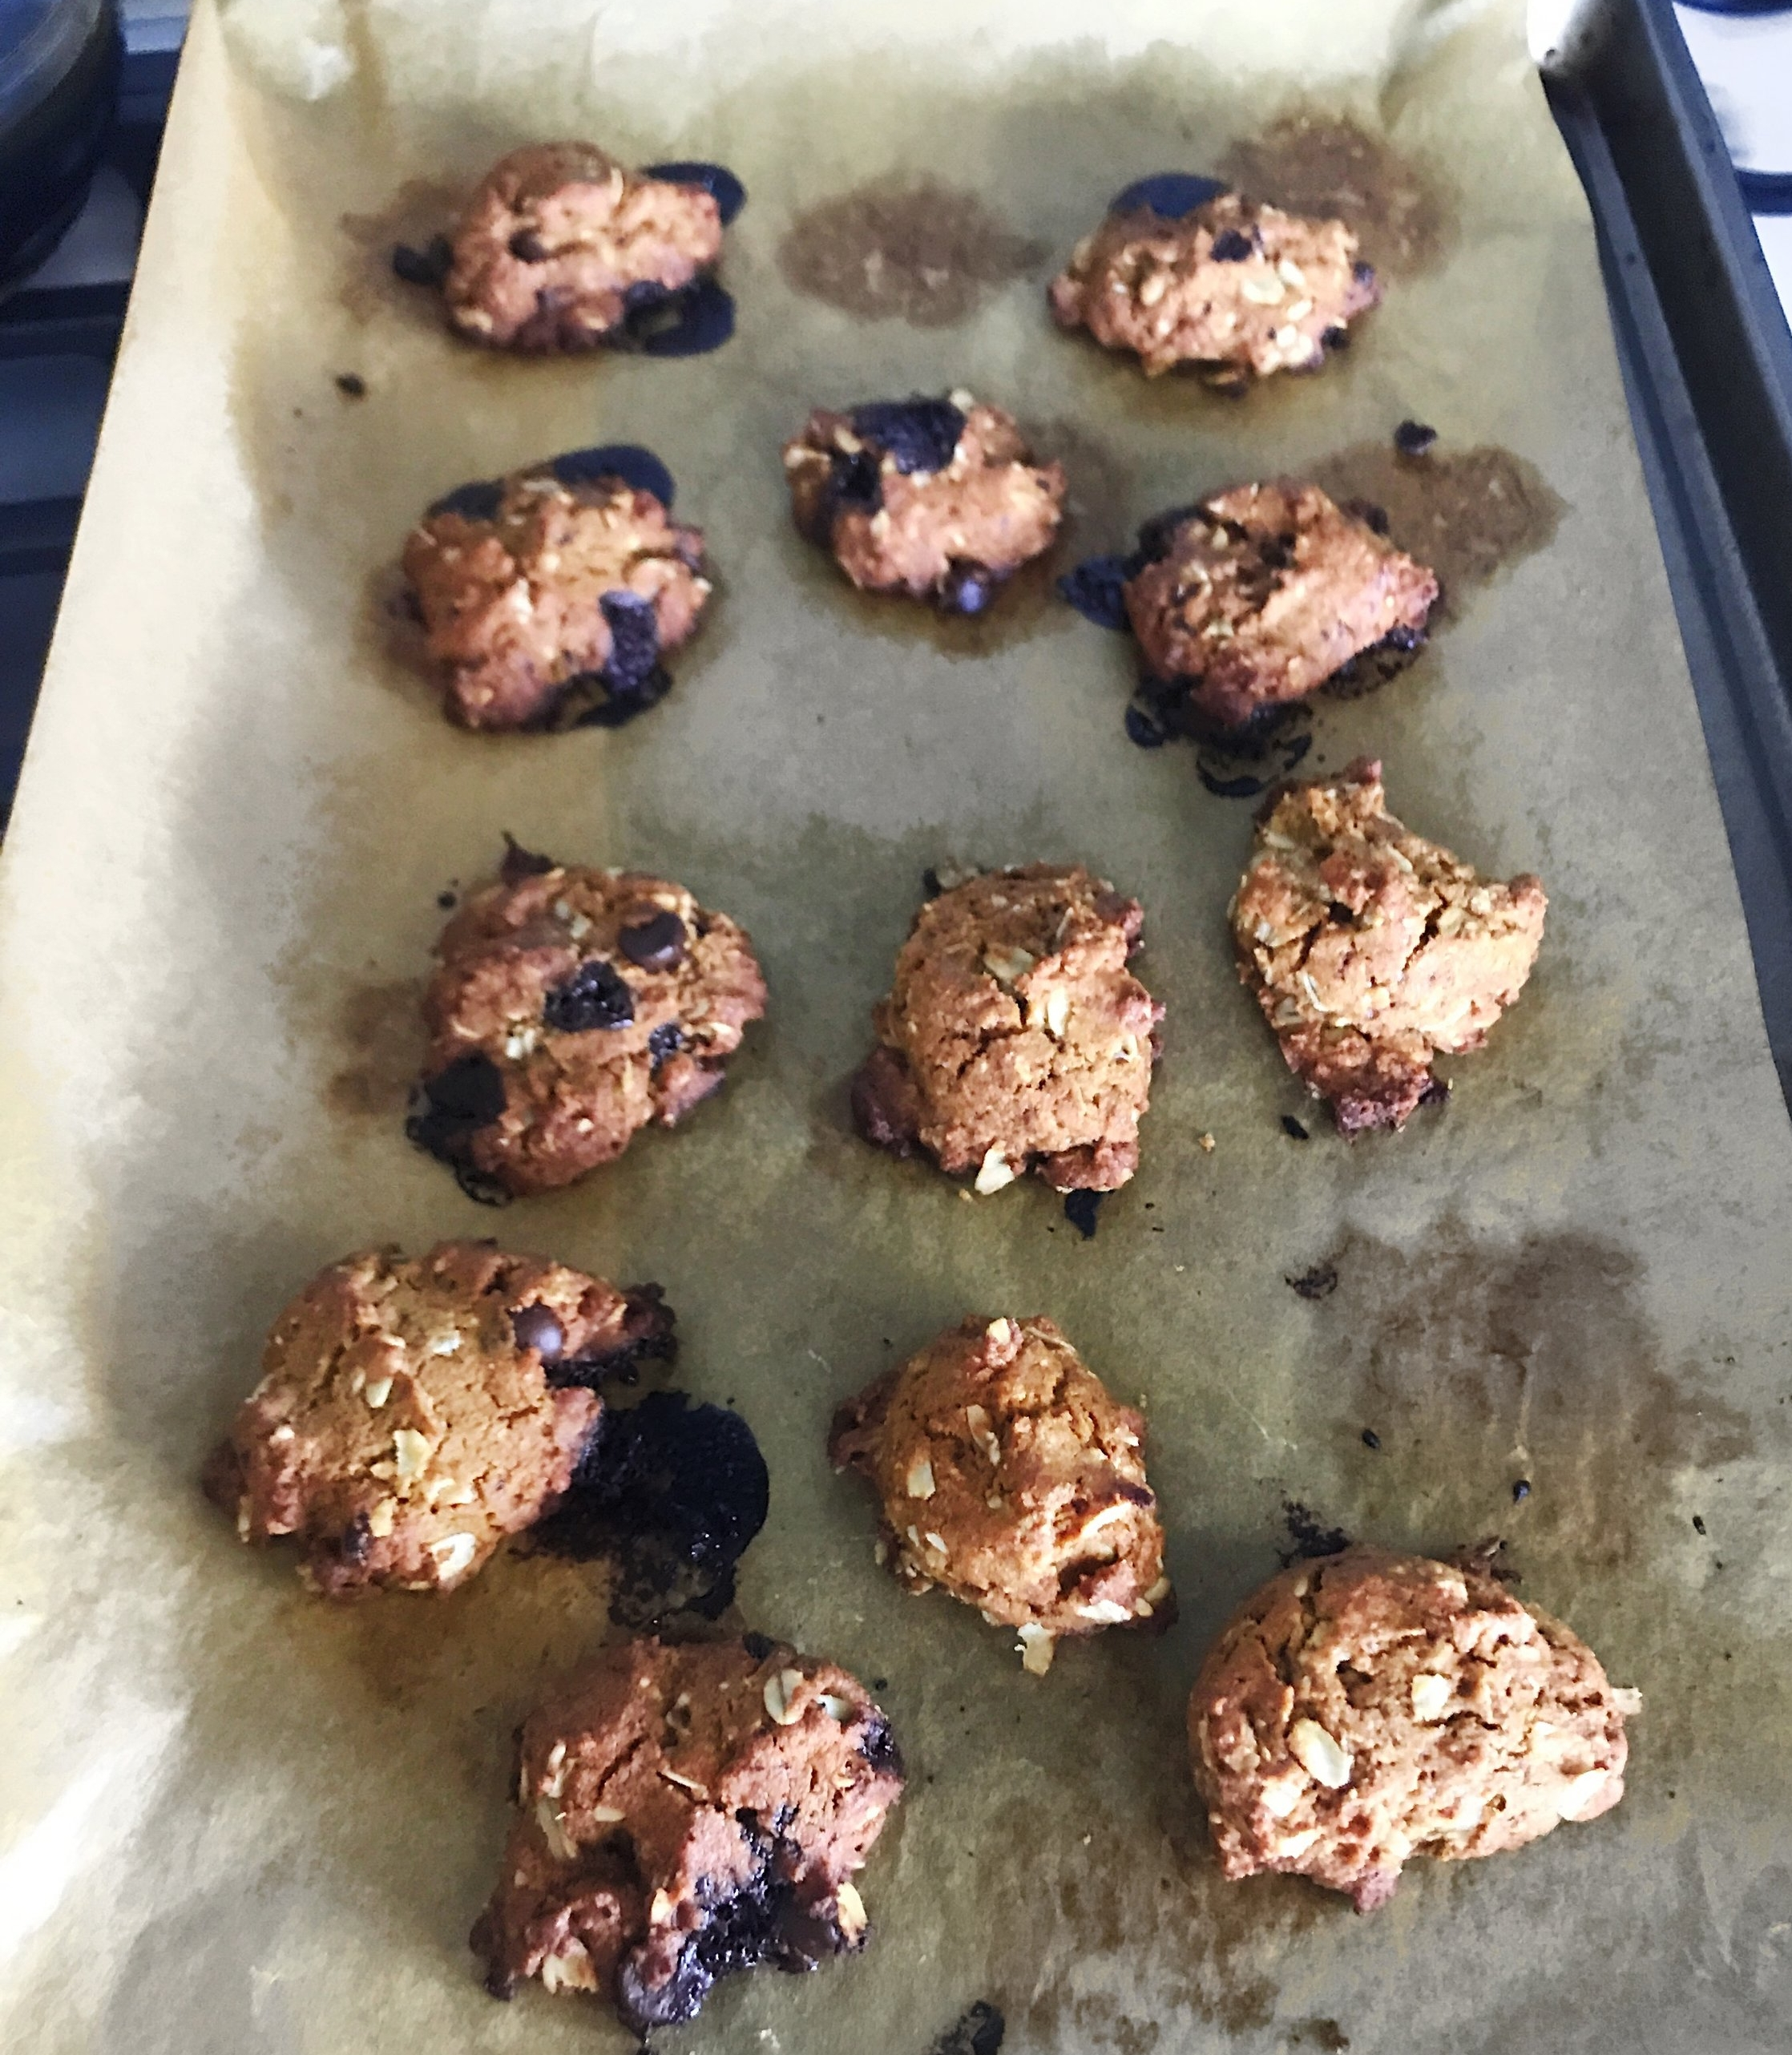 Recipe for Gluten Free Oatmeal Cookies (chocolate and non-chocolate)  Ingredients:  1.25 C brown rice flour  Bobs Redmill  1/2 C gluten free oats  Bobs Redmill  1 egg white 1 tsp baking soda 1/2 C  Wholesome Sweet  coconut sugar or regular sugar 1/4 C tapioca starch 1 tsp cinnamon 1/4 C agave nectar 1 tbsp  Fourth and Heart  Ghee Butter (regular butter works just fine, put in a little bit extra and a dash of salt) 1/4 C Coconut oil. .  **To make them chocolate chip, add in 1/4 C to 1/2 C chocolate chip I used  Enjoy life foods  vegan chips and a little bit up chopped of  Eating Evolved  midnight (optional) **  Mix dry goods then wet. Heat oven to 375 F. Spread parchment paper on your cookie sheet and dish out tbsp of cookie batter. Cook for 10-11 min. It is best to eat with in a few days. Store it in an airtight container either the freezer for long time storage or after a day place it in the fridge. Leaving them out for a day is ok.